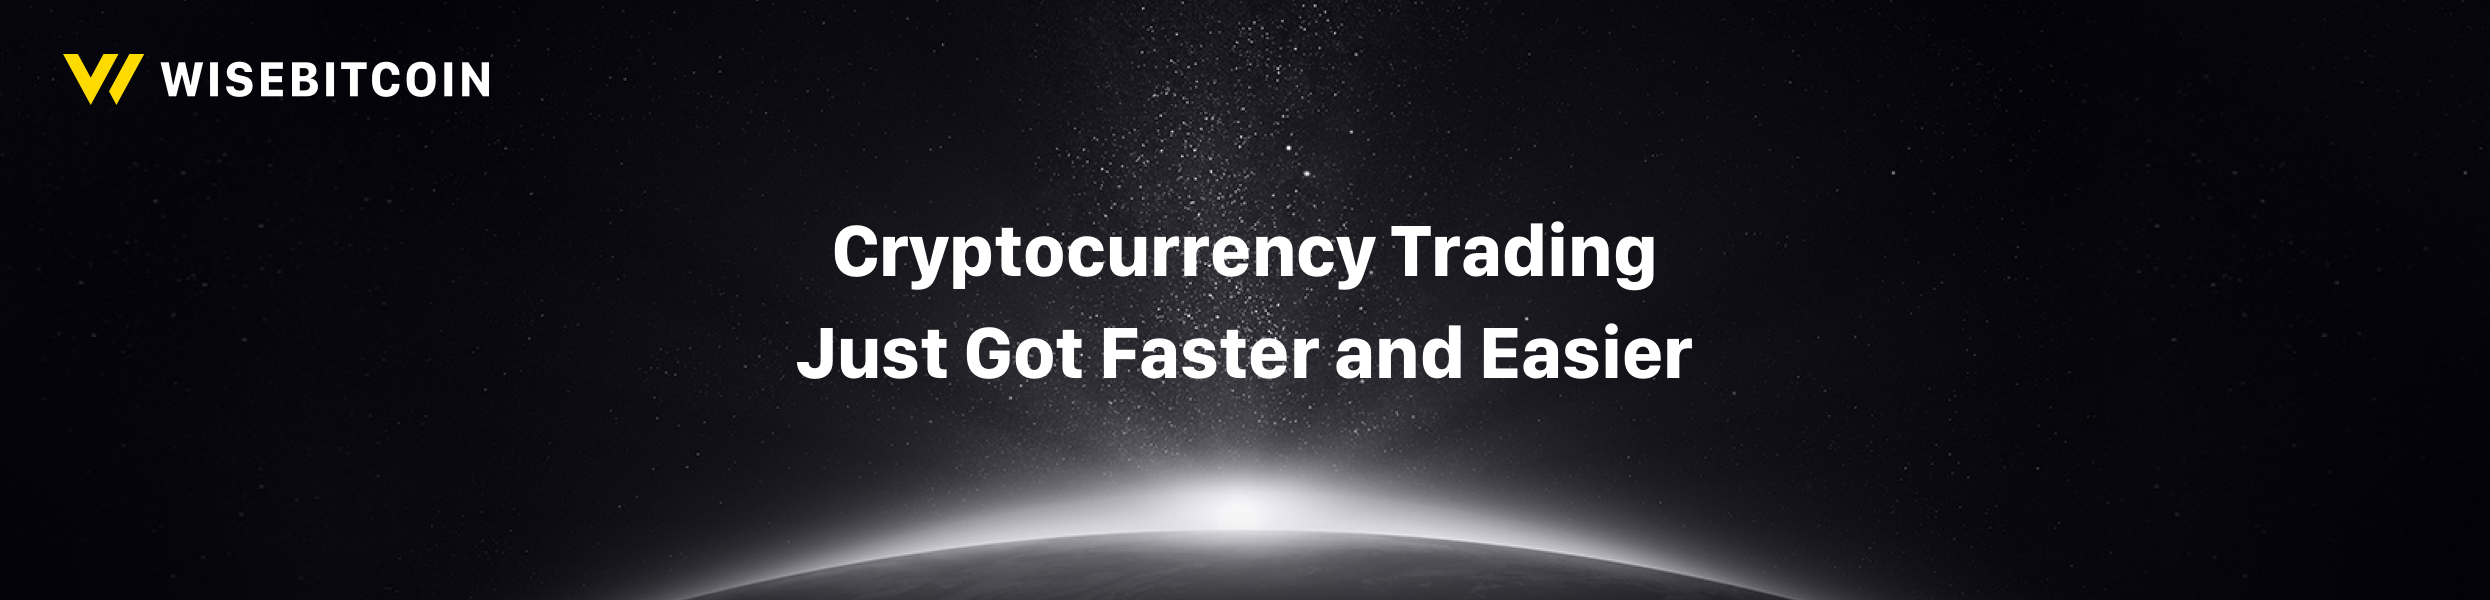 Crypto trading got faster and easier with Wisebitcoin.